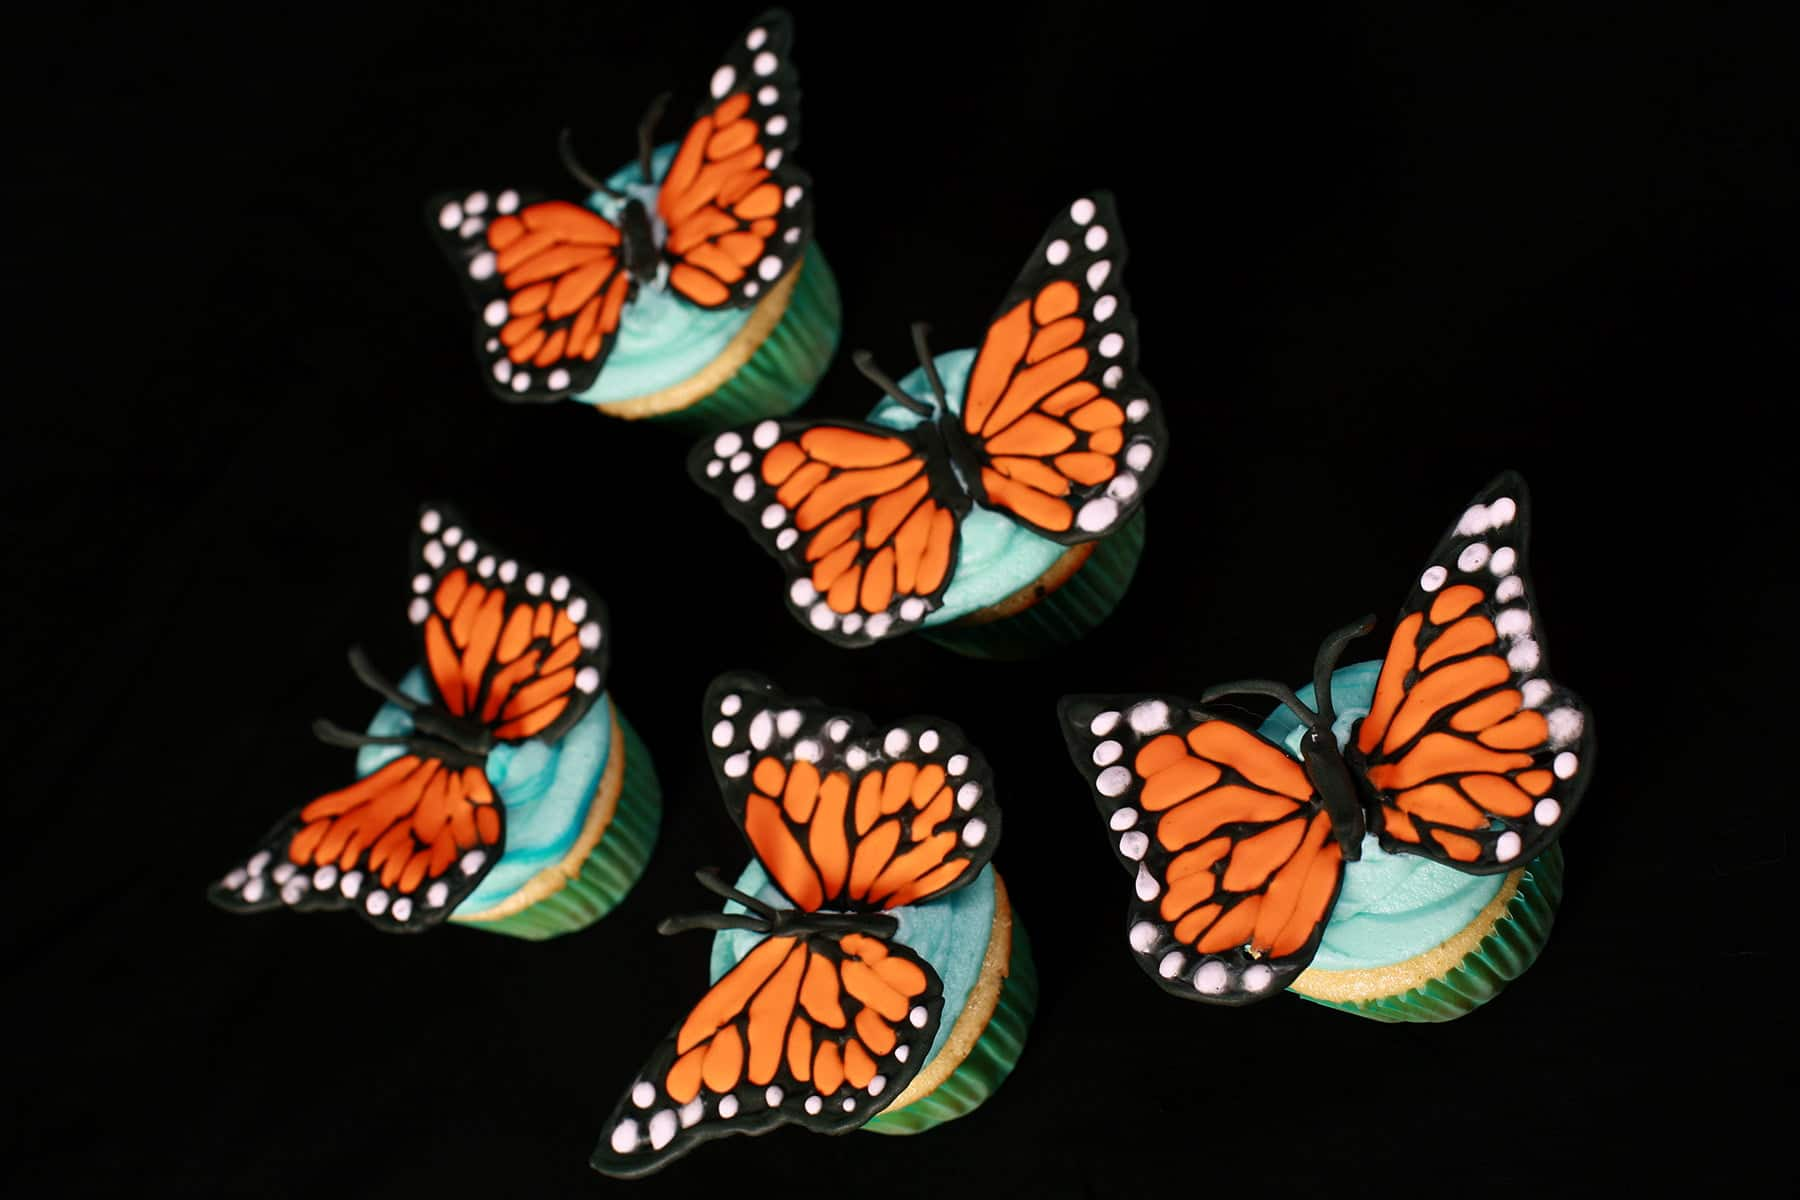 Several 3D Monarch Butterfly Cupcakes, on a black background.  Vanilla cupcakes, frosted with sky blue icing, and topped with Monarch butterfly wings made from royal icing.